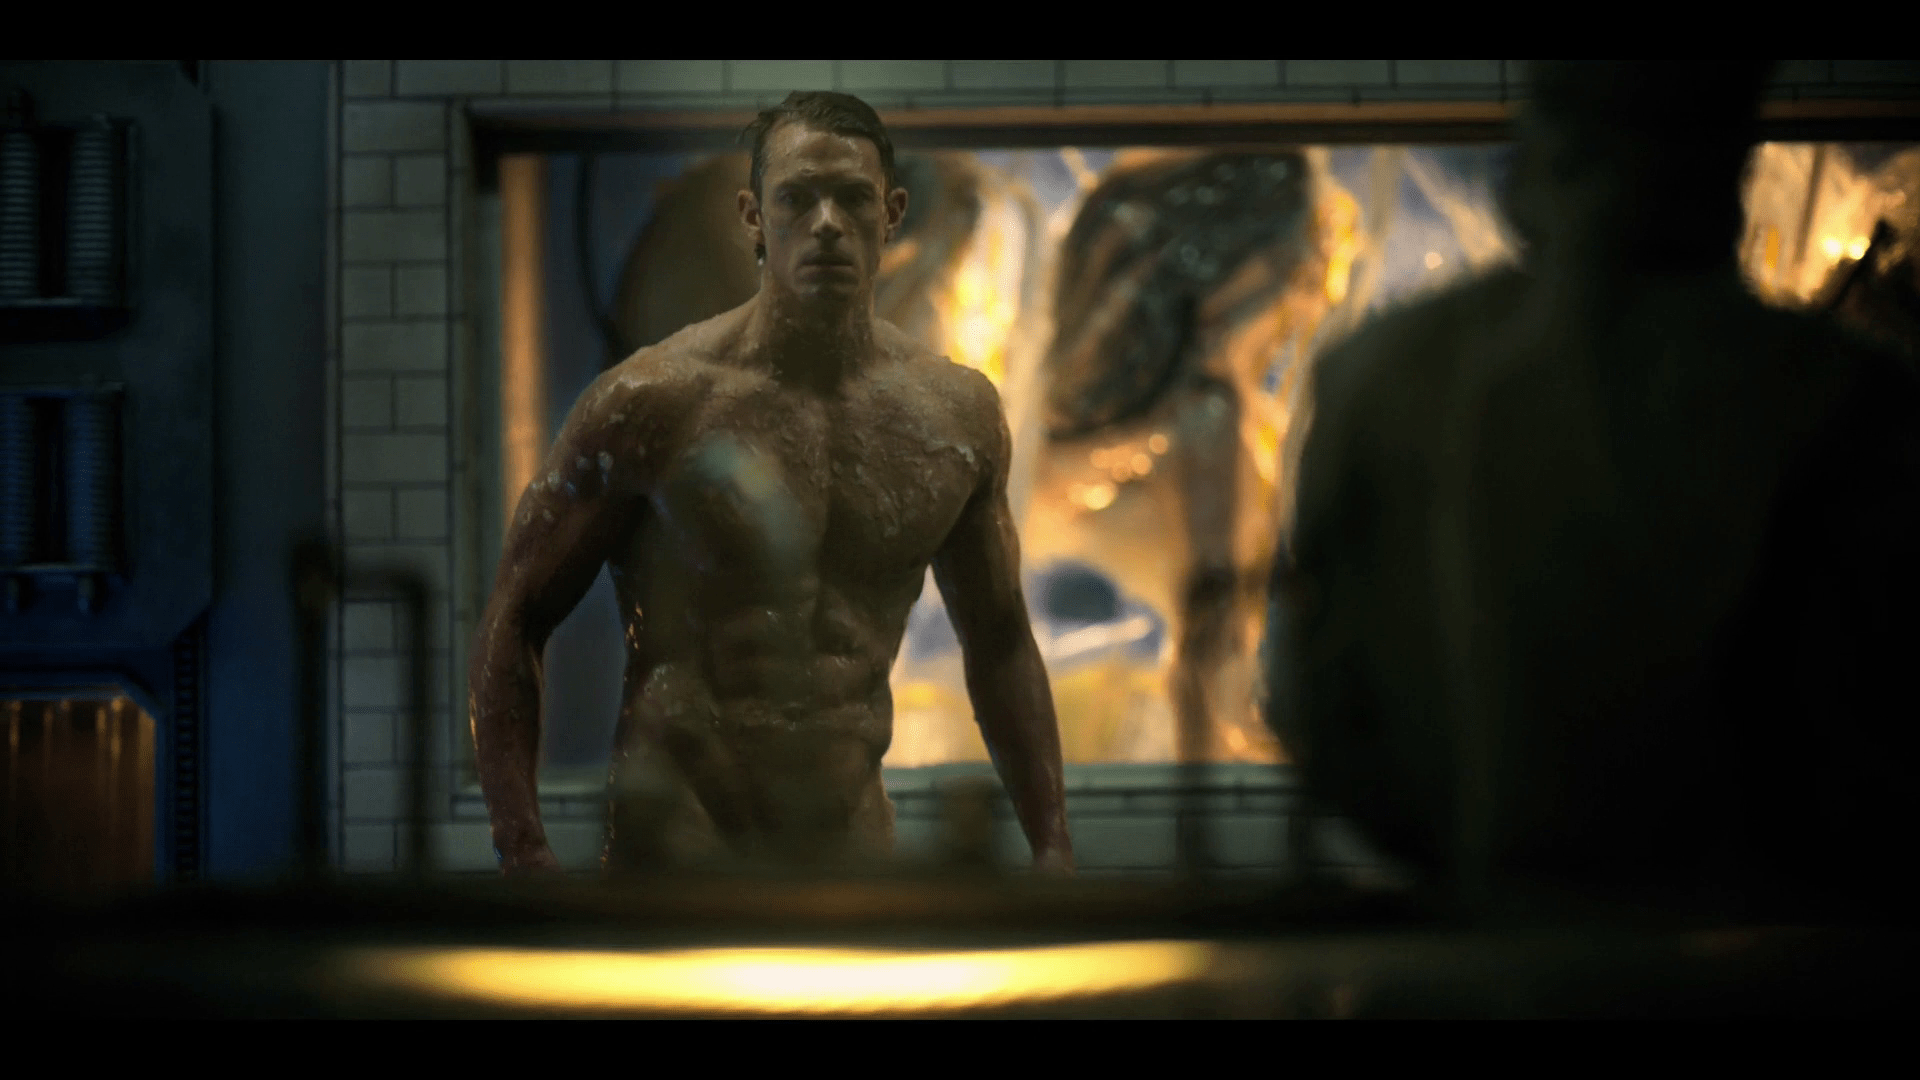 Altered Carbon Male Frontal joel kinnaman naked butt in altered carbon - famousmales